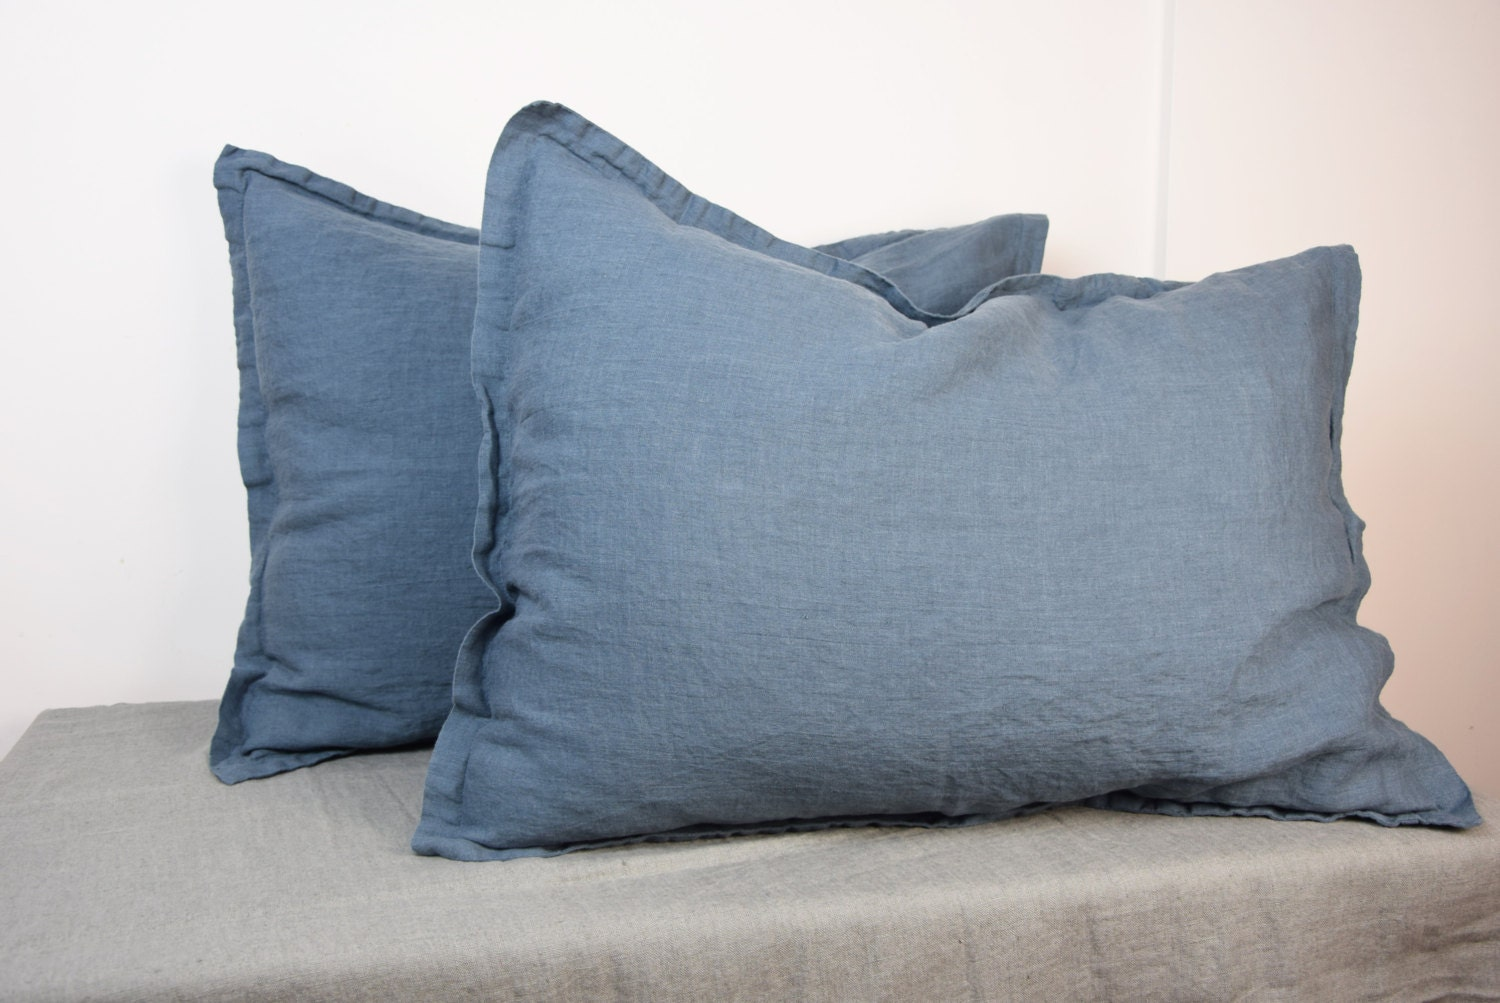 Pair Of 100 Linen Pillow Shams Blue Shadow Bedding Collection Blue Grey Gray Color Standard Queen King And Other Custom Sizes